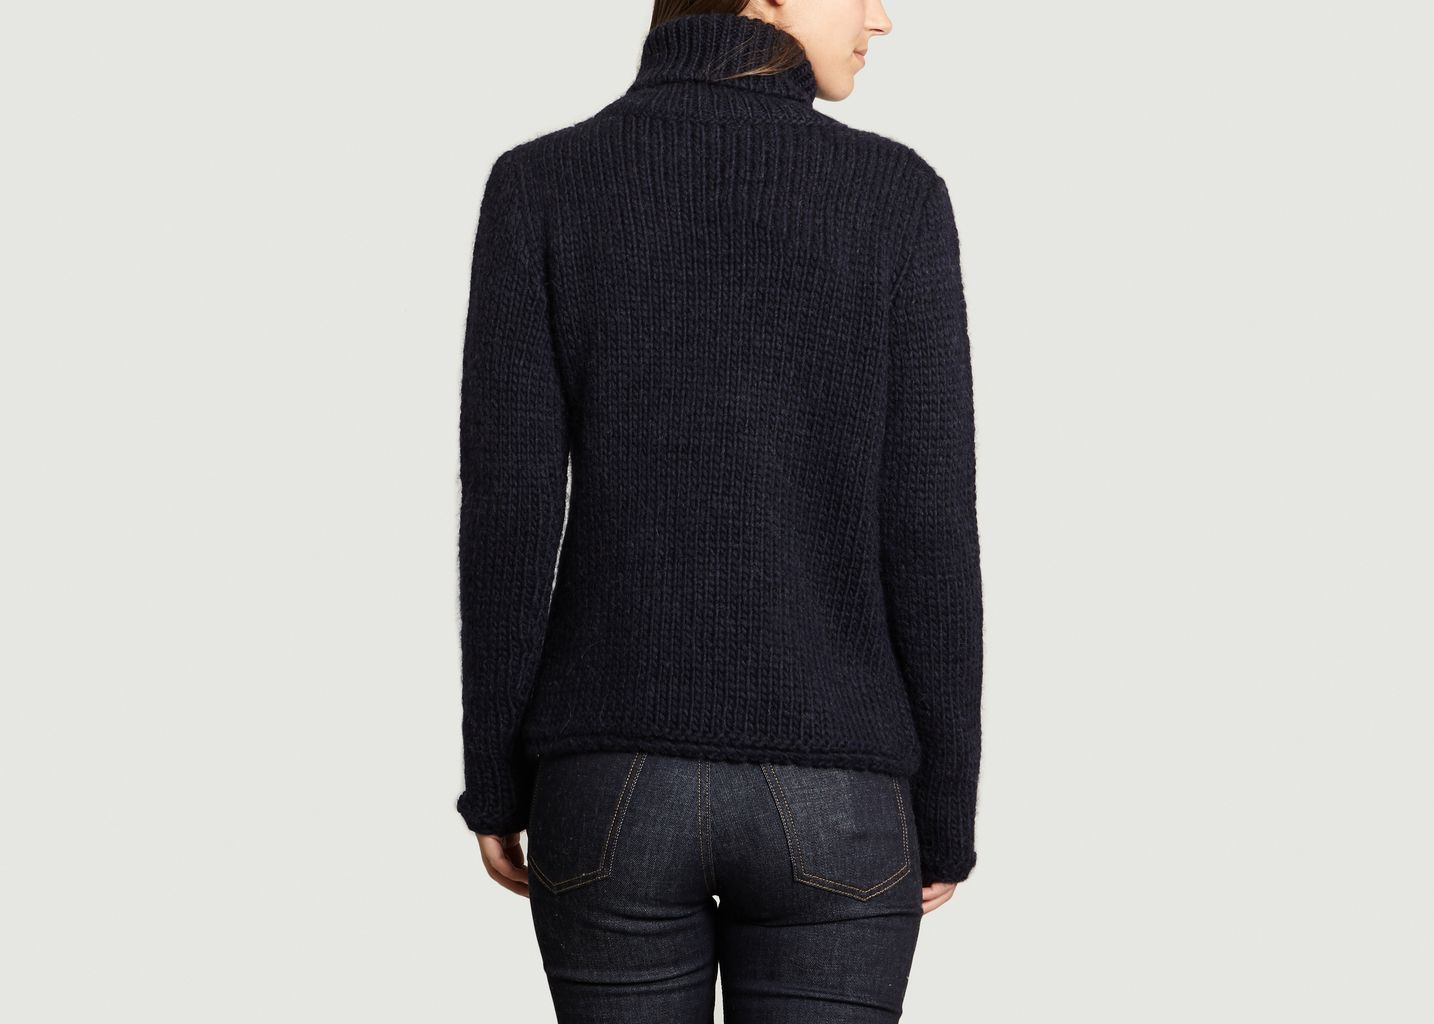 Pull Col Majestic Pull Col Filatures Roulé vq4Bx1